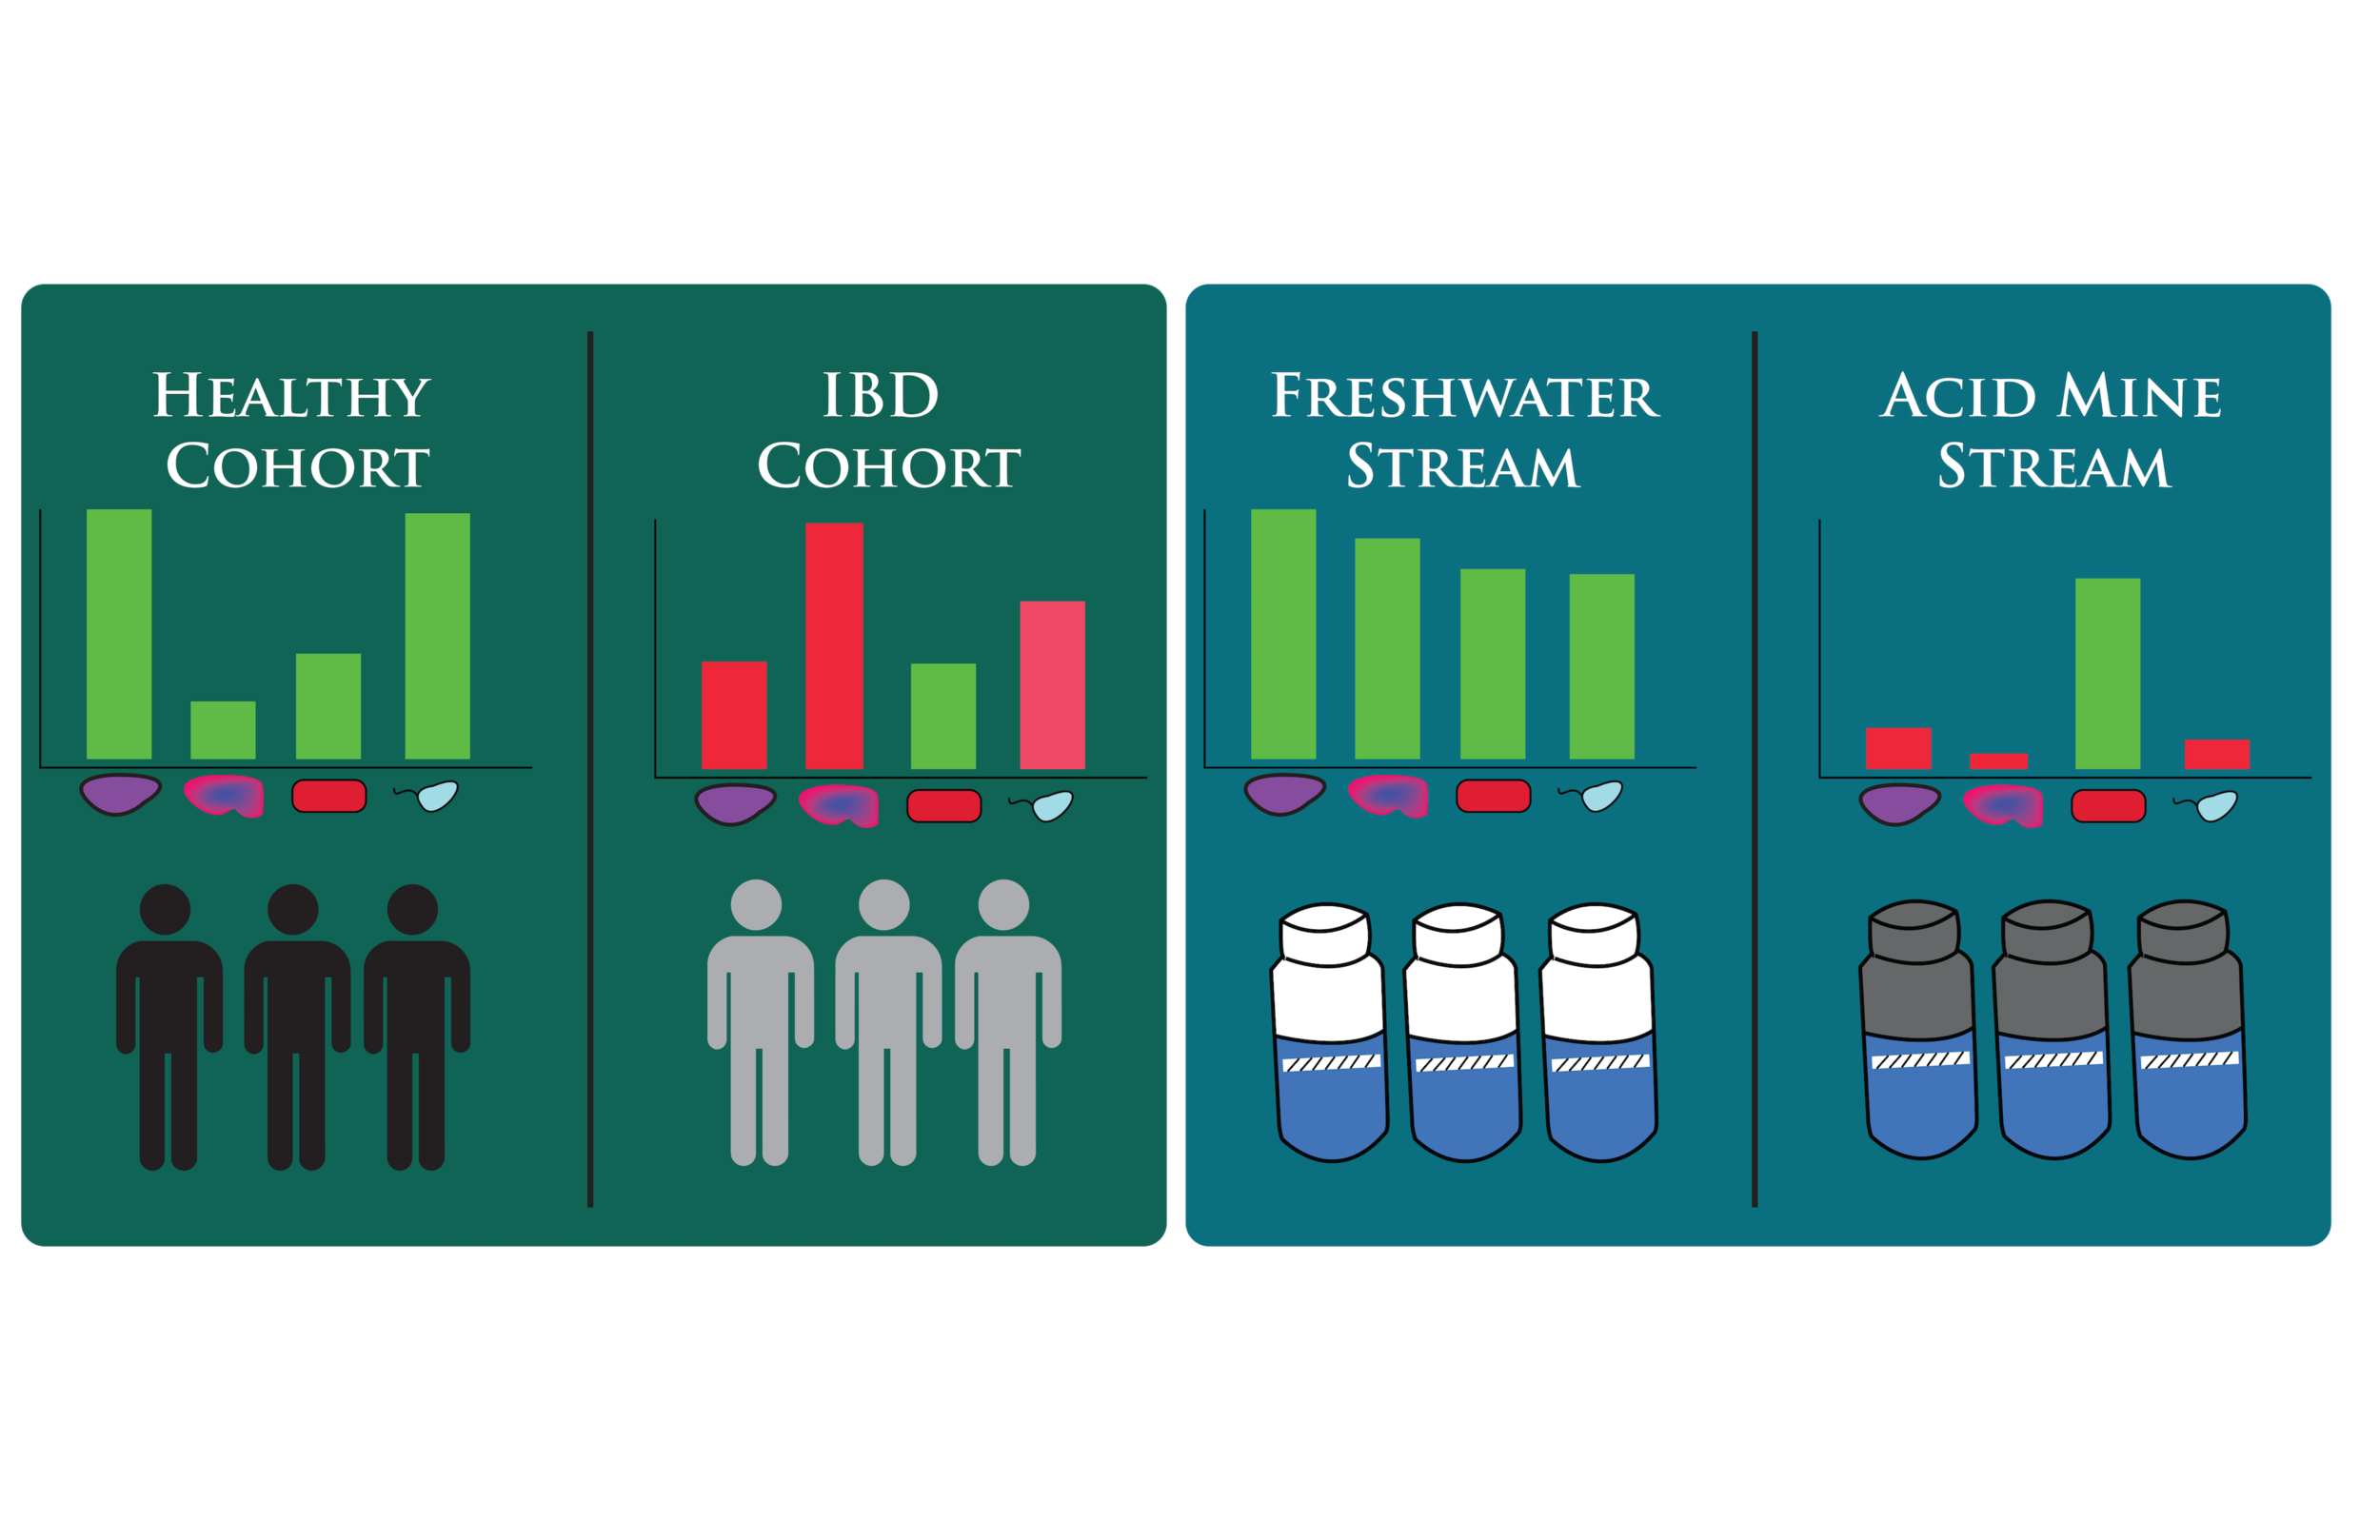 With our bacterial community analysis, trends in microbial community structure between cohorts can be visualized and assessed for significance within any sample matrix.